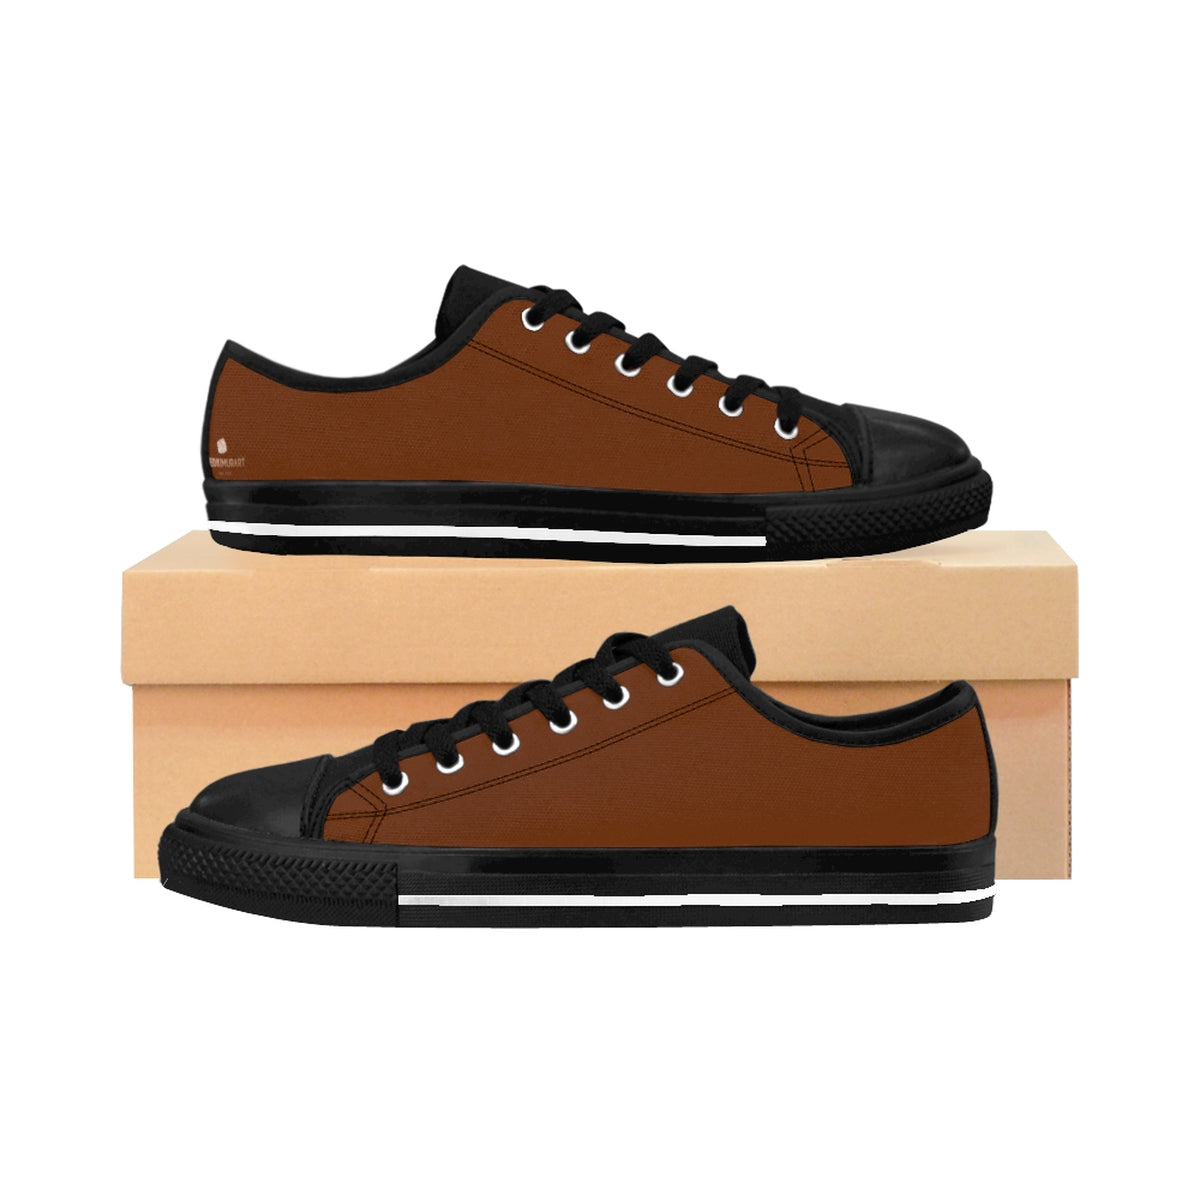 Caramel Brown Solid Color Designer Low Top Women's Sneakers (US Size: 6-12)-Women's Low Top Sneakers-US 10-Heidi Kimura Art LLC